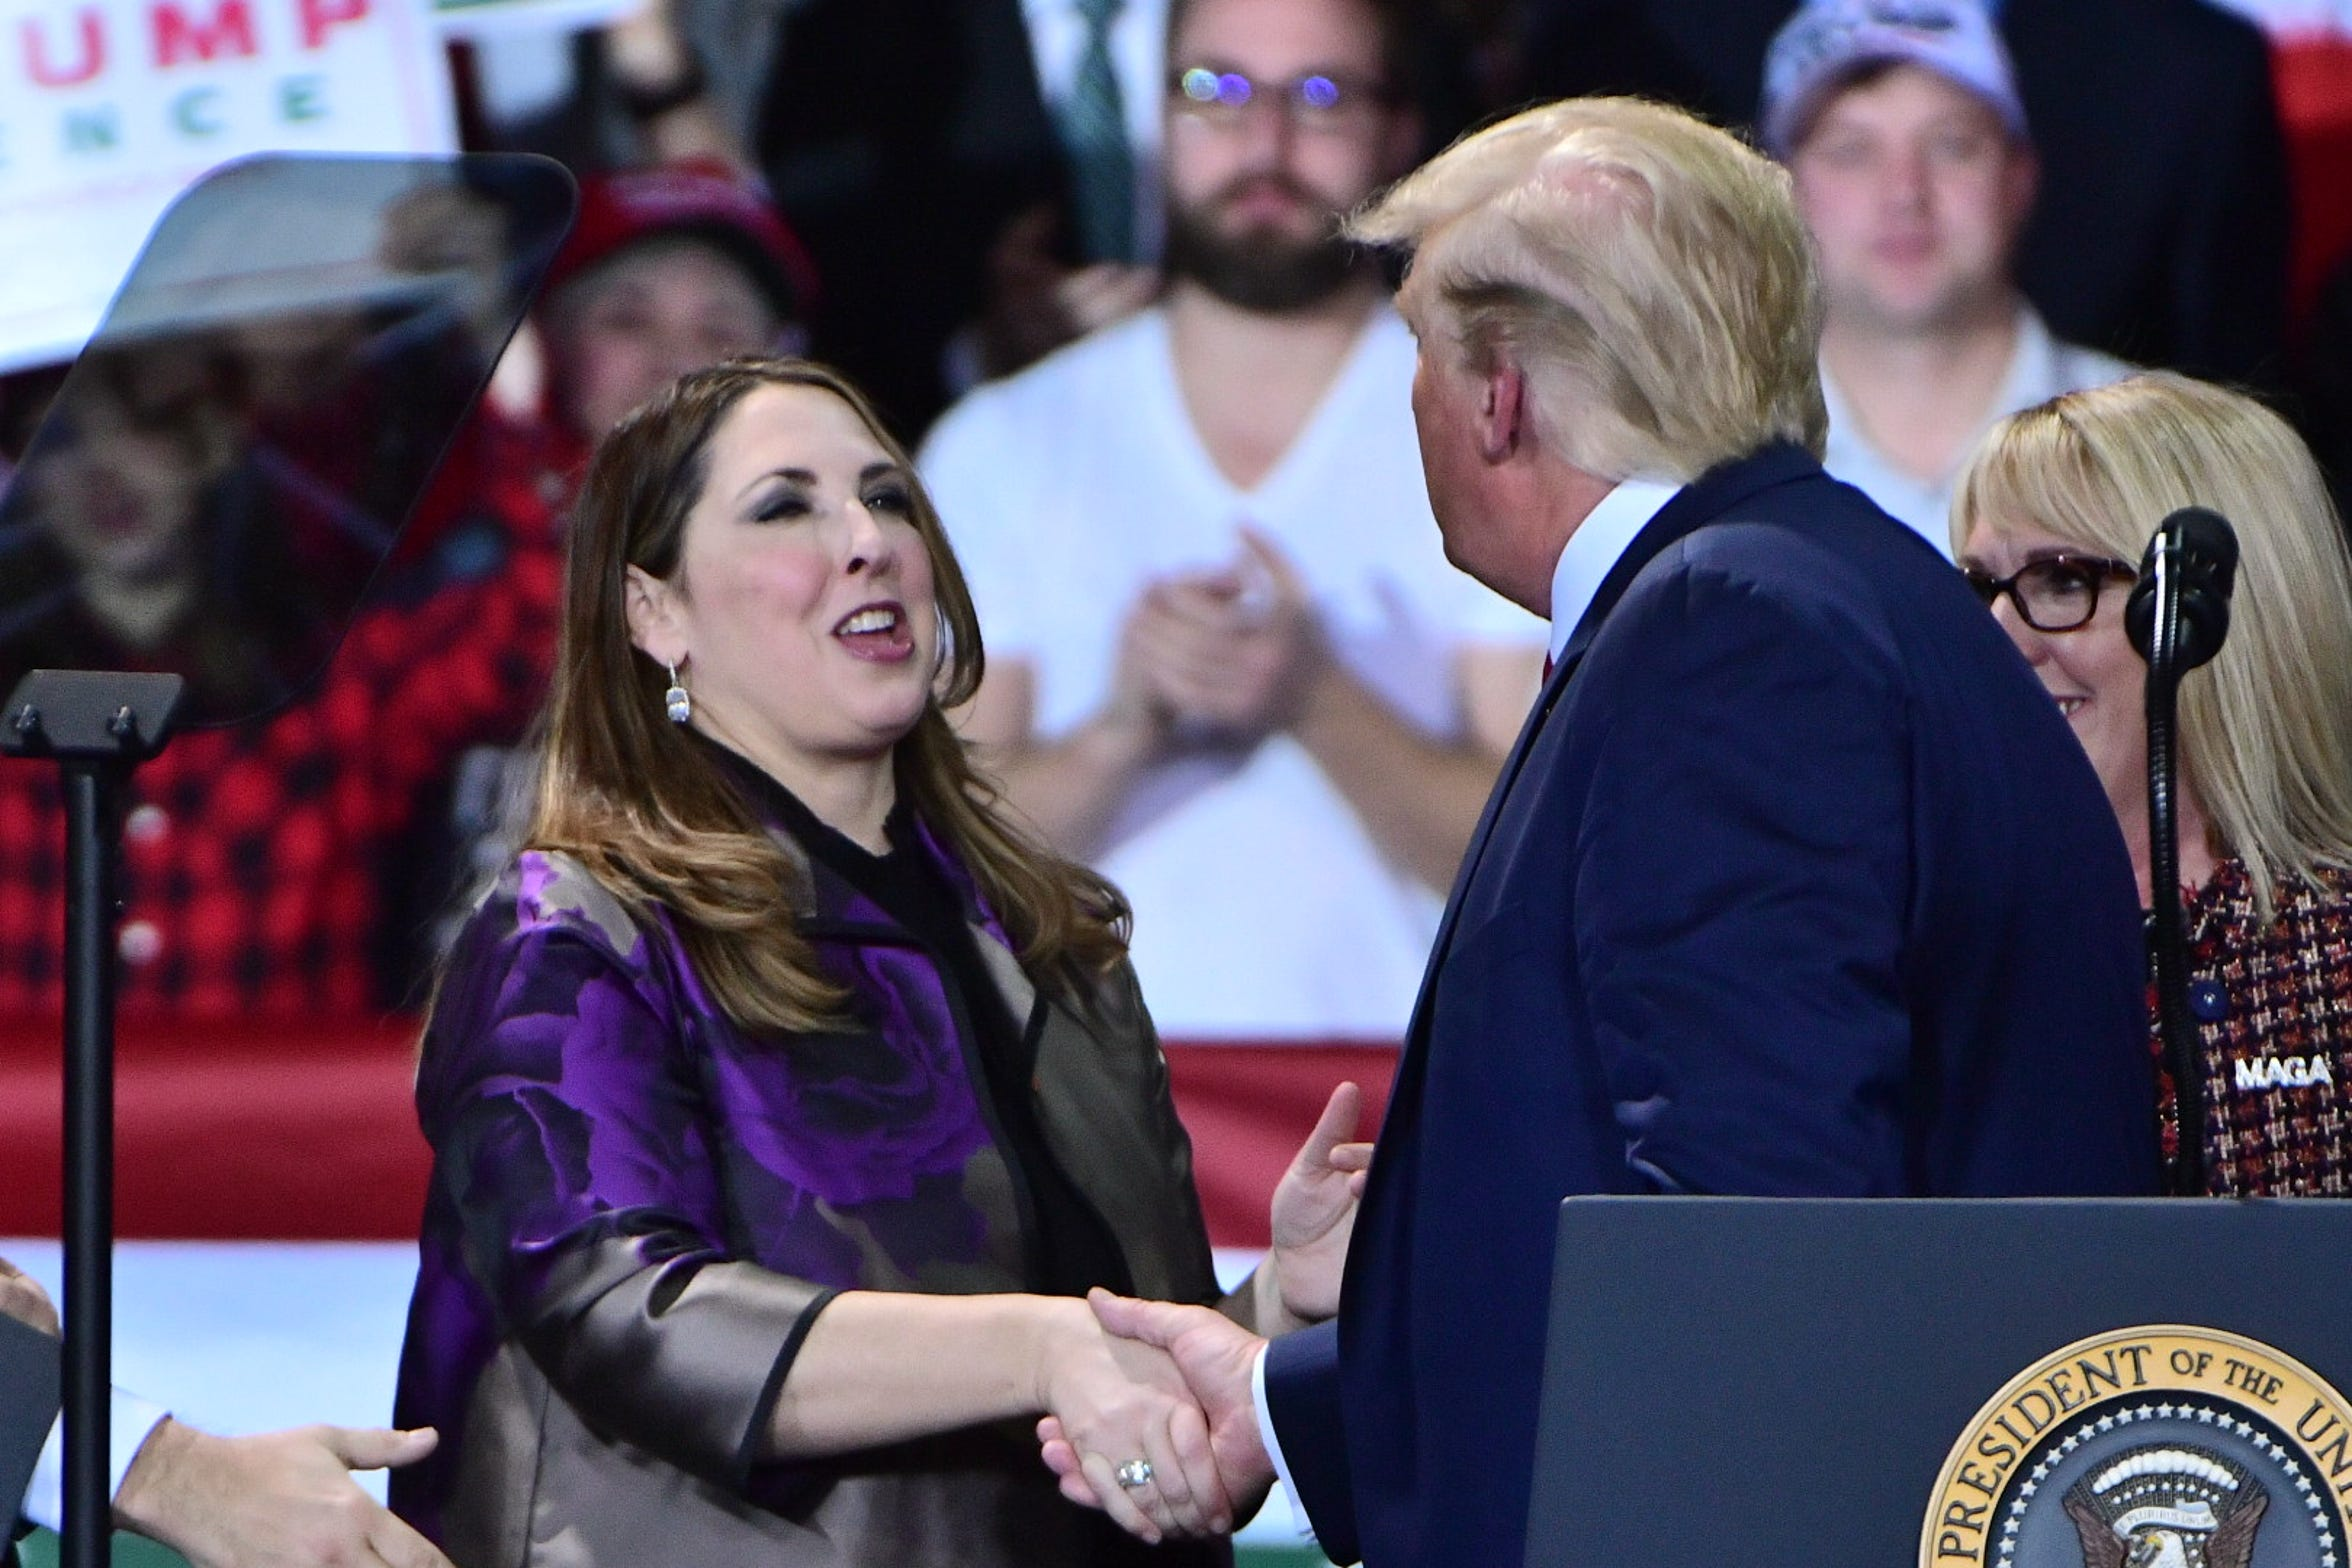 Ronna McDaniel, Chair of the Republican National Committee, shakes hands briefly with President Donald Trump after he invited her on stage during a political rally in Battle Creek.